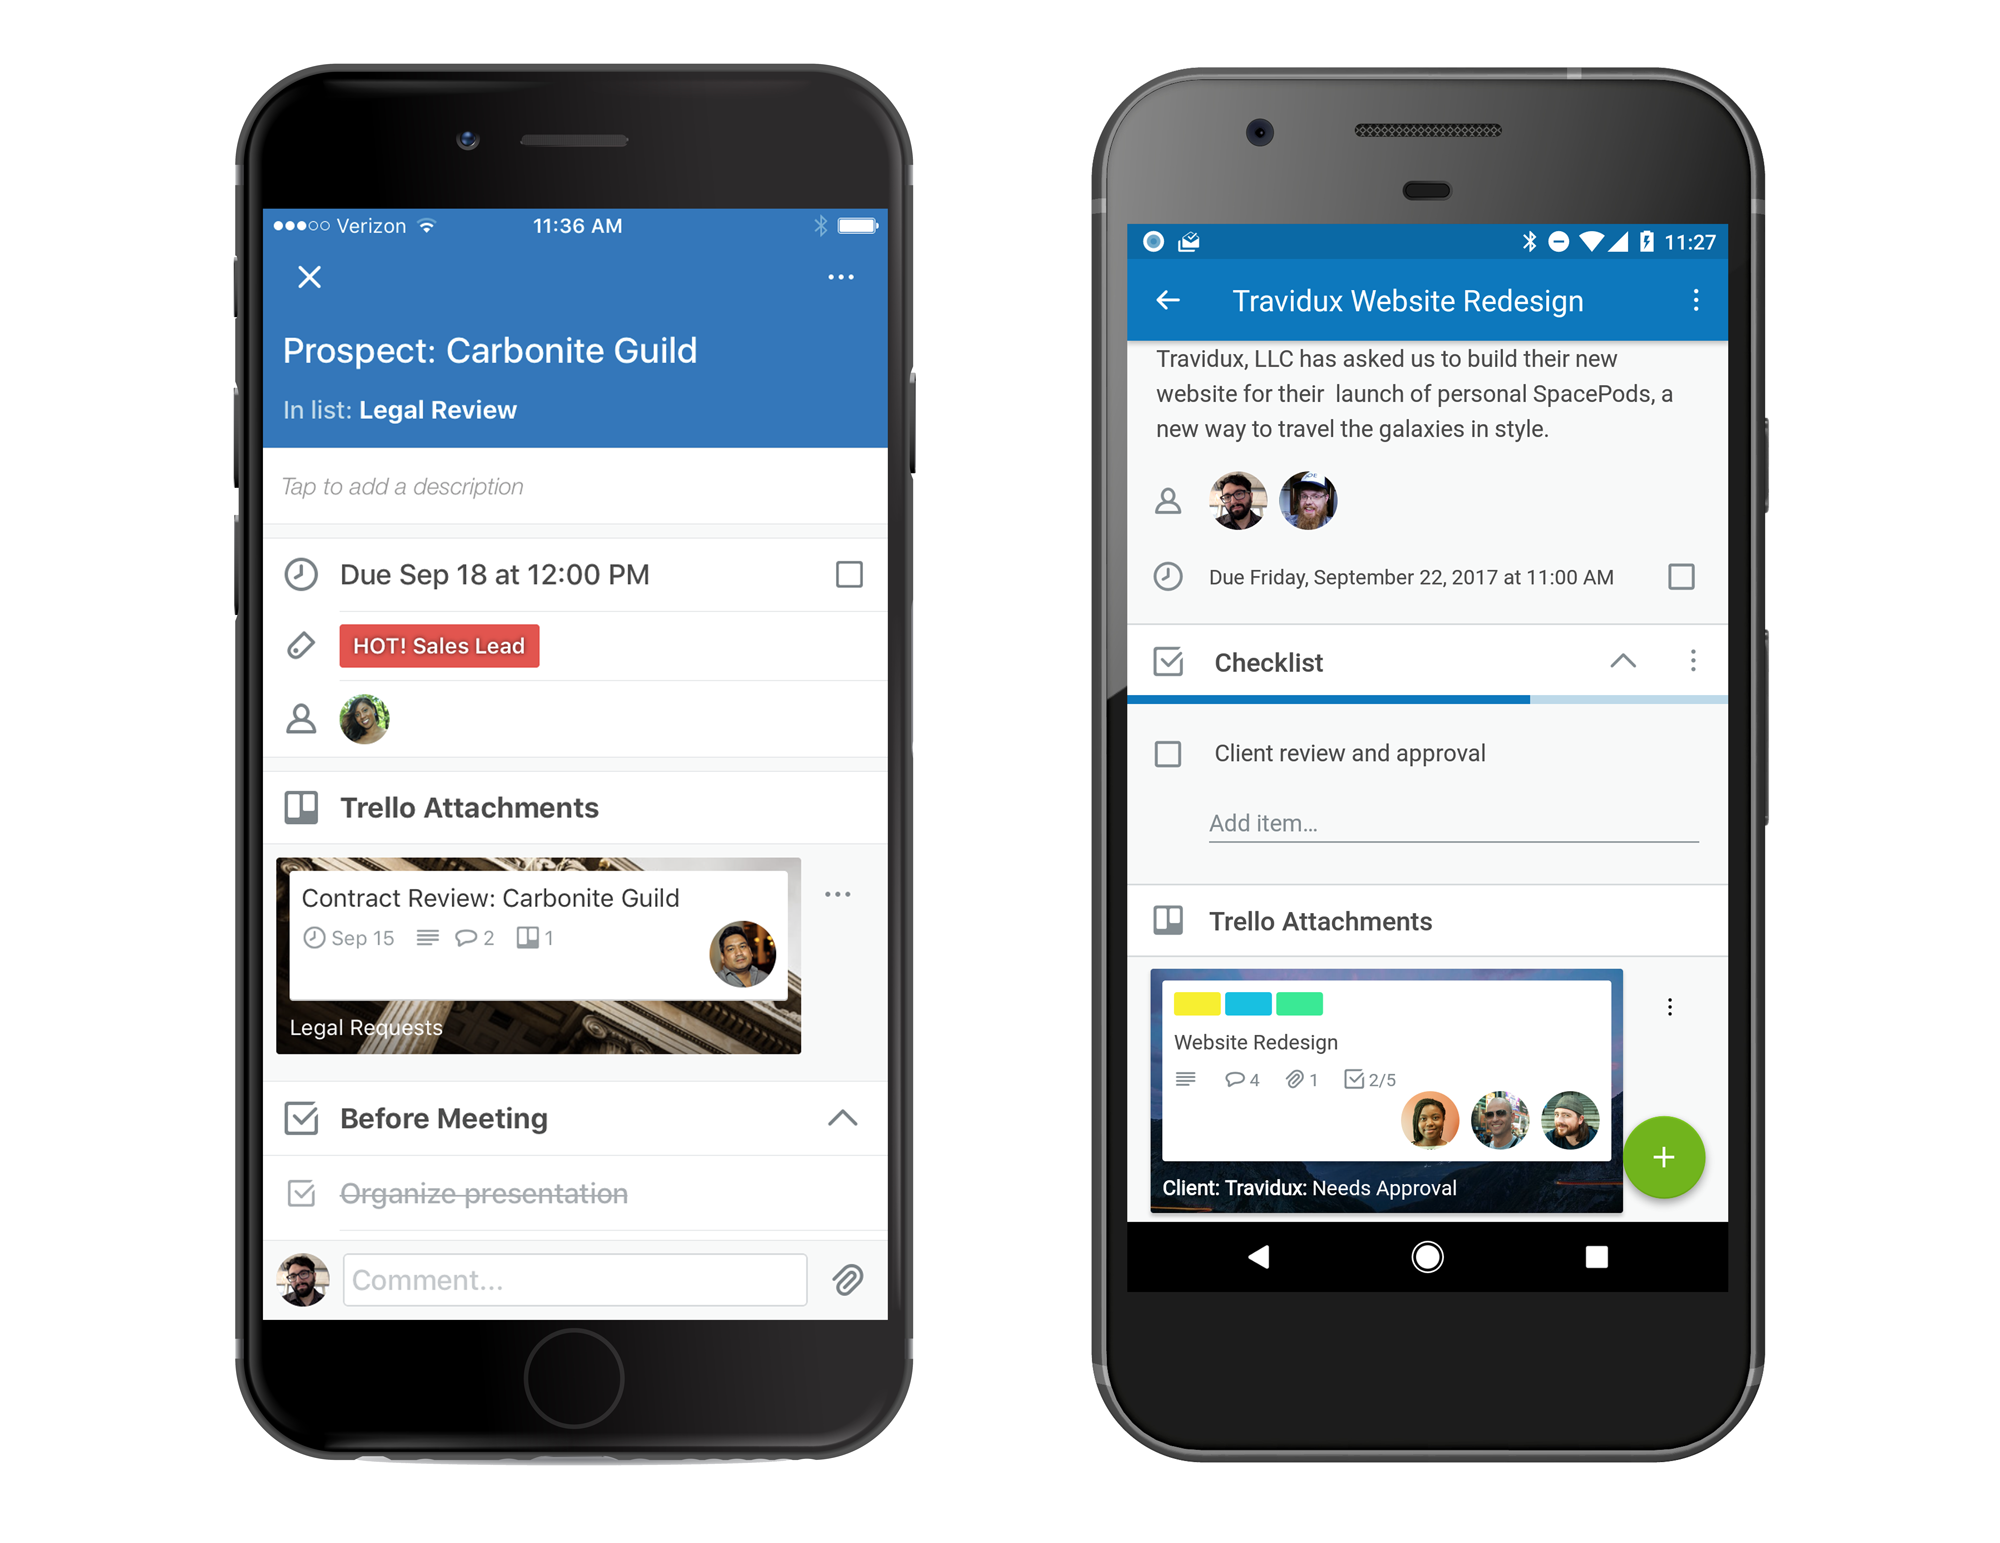 Trello Related Cards in iOS or Android